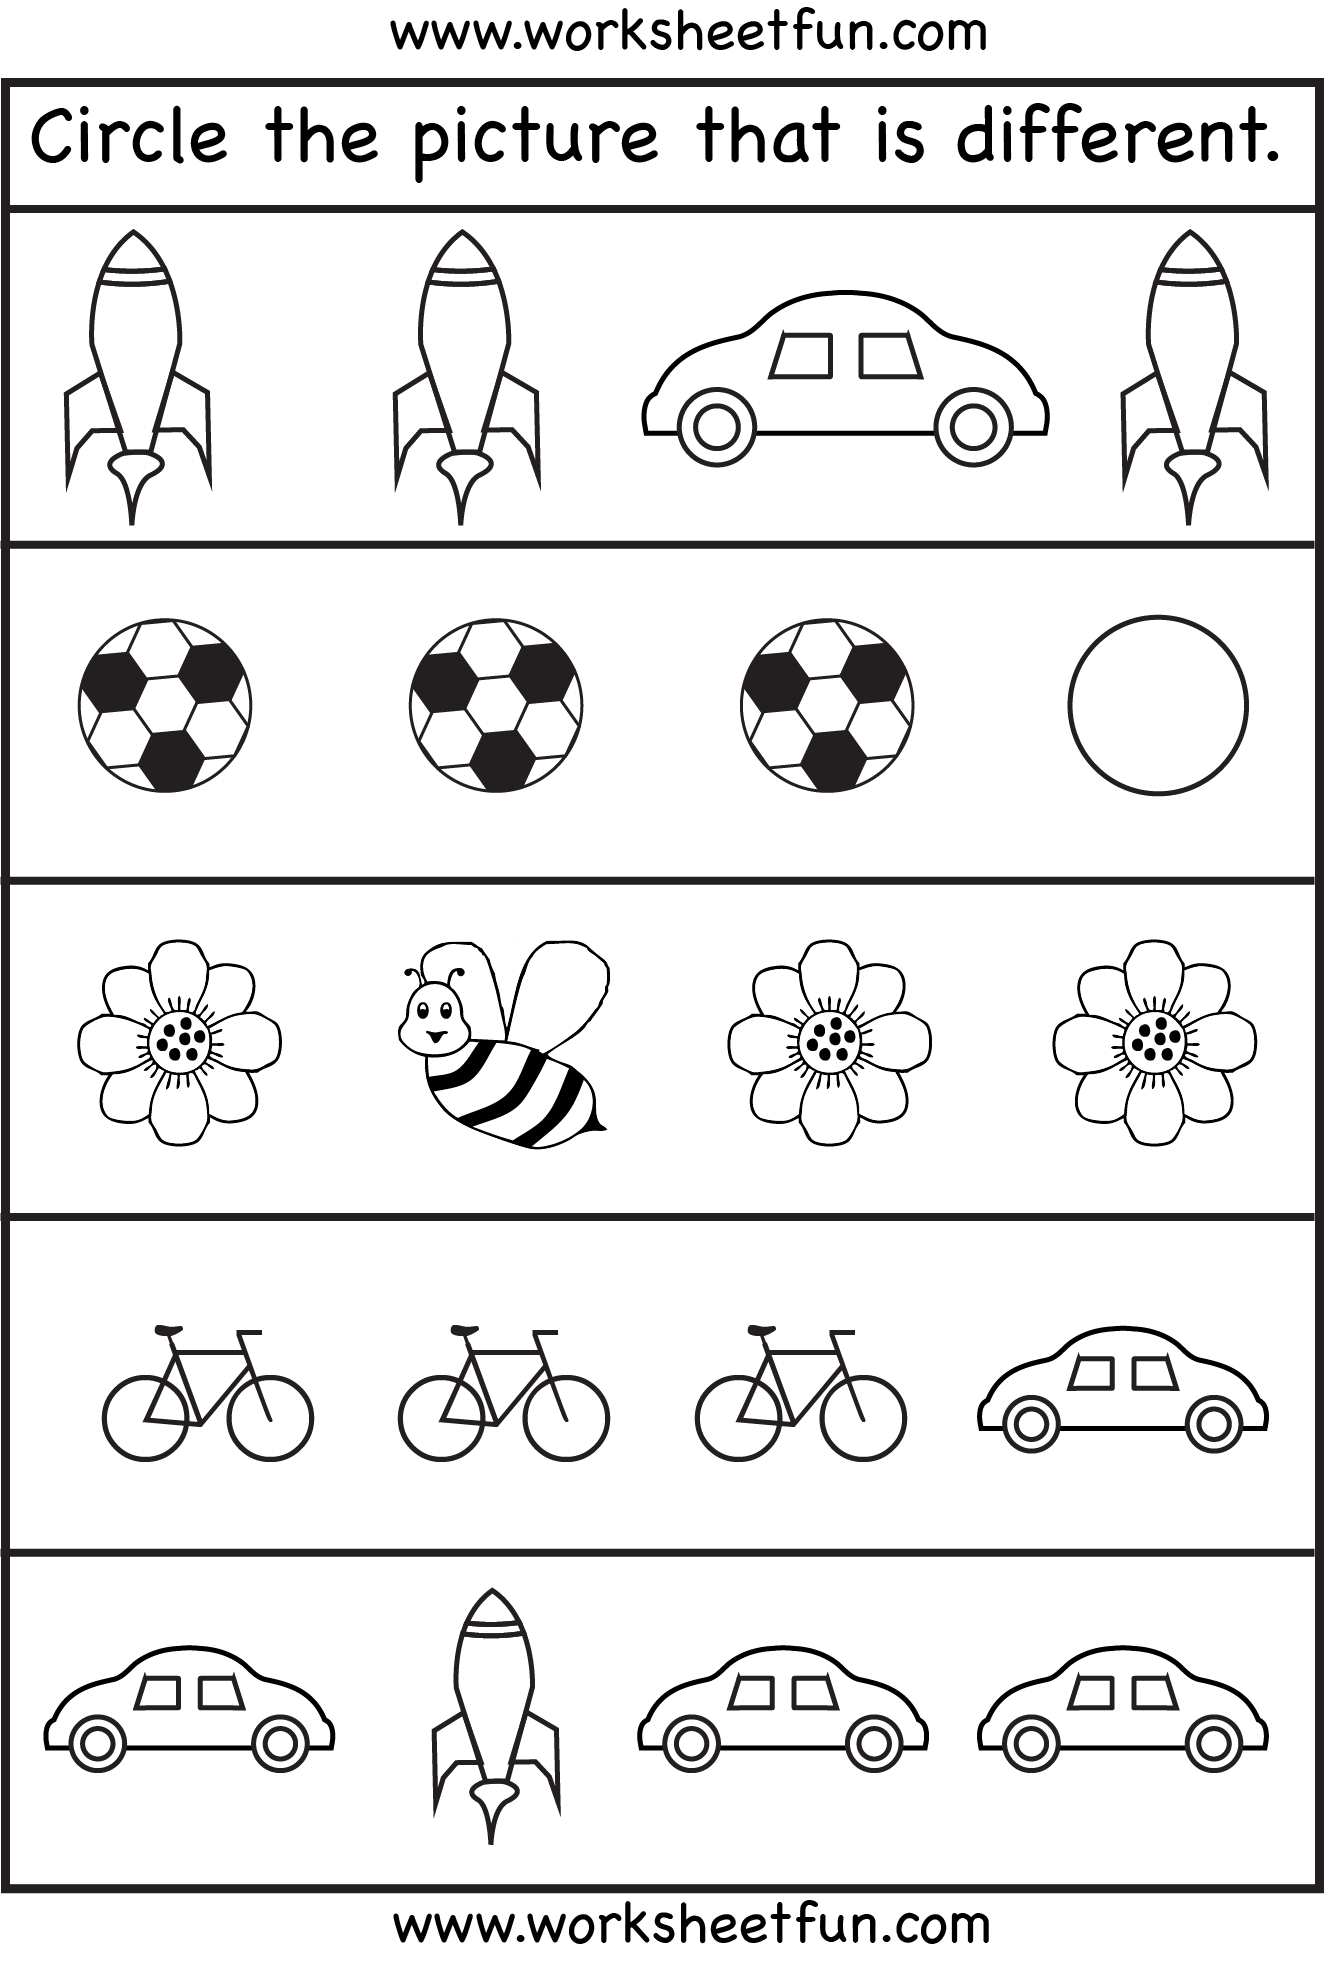 circle the picture that is differentand other concepts shapes math etc free printable preschool and kindergarten worksheets - Free Printable Activity Sheets For 5 Year Olds